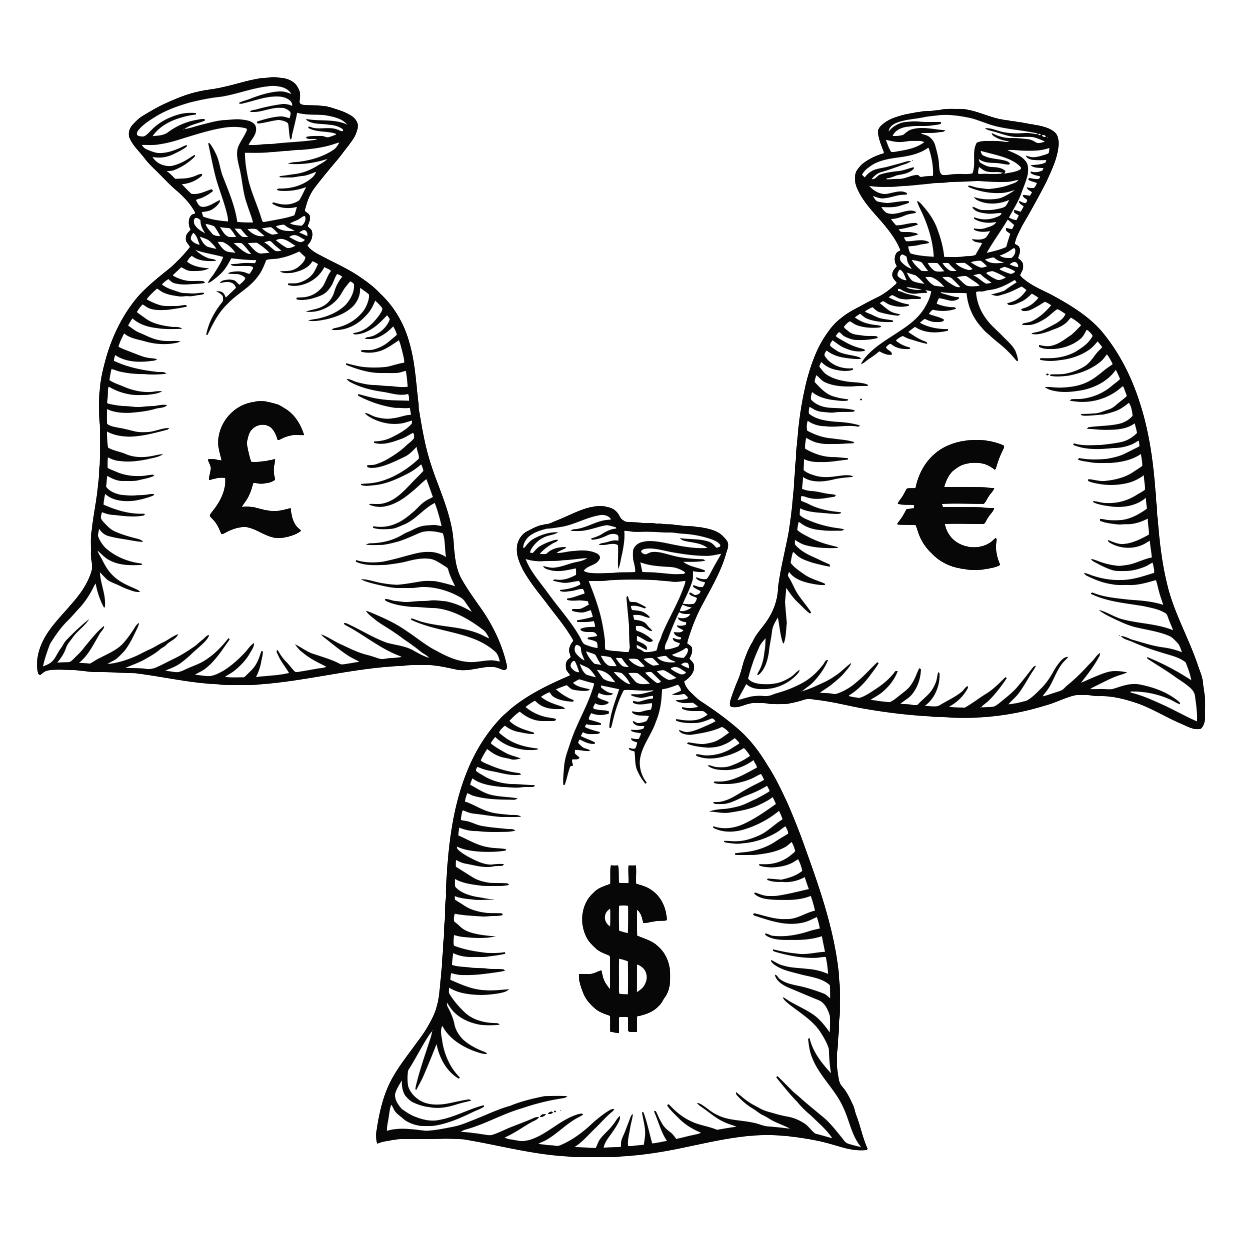 1235x1235 Money Bags With Dollars Euro And Pound Printable Image